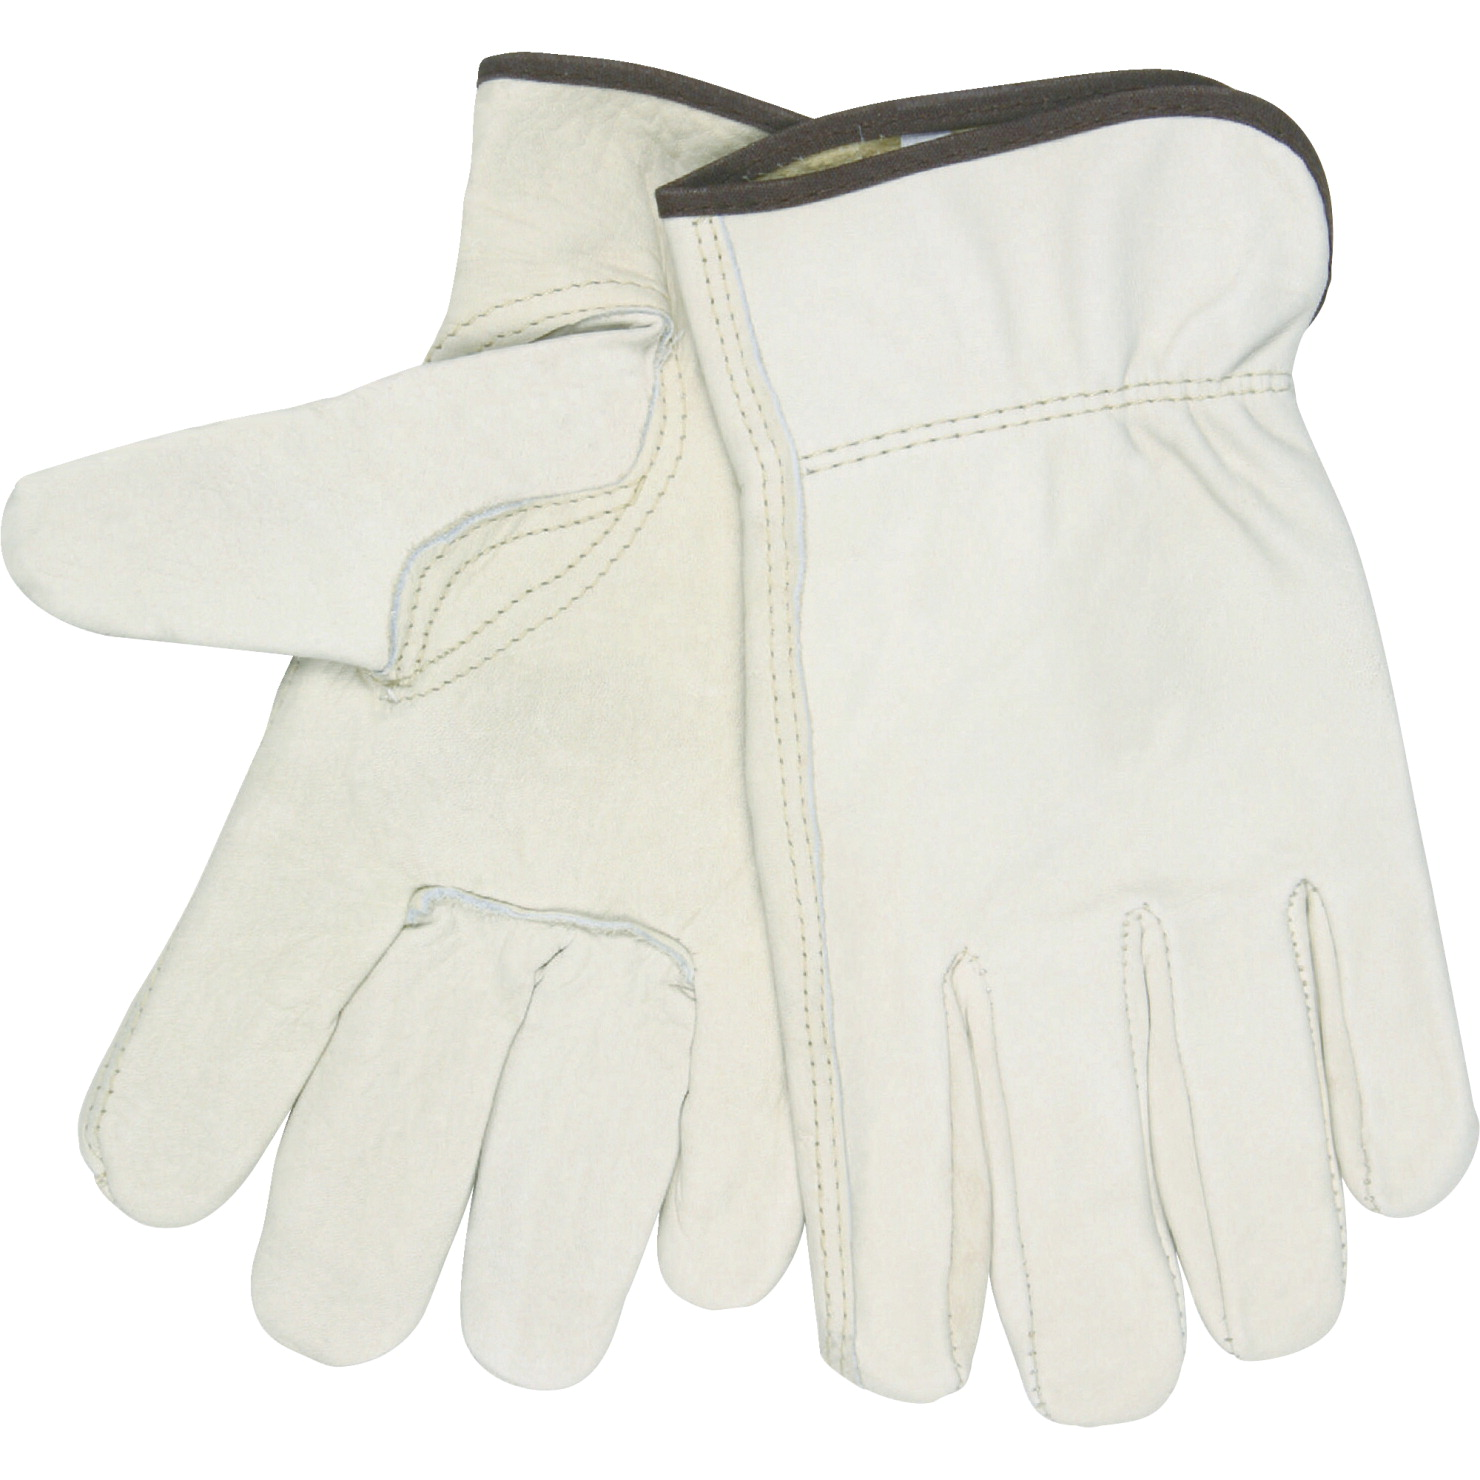 R3 Safety Unlined Driver Gloves, Medium, Leather, Cream, Pack of 2